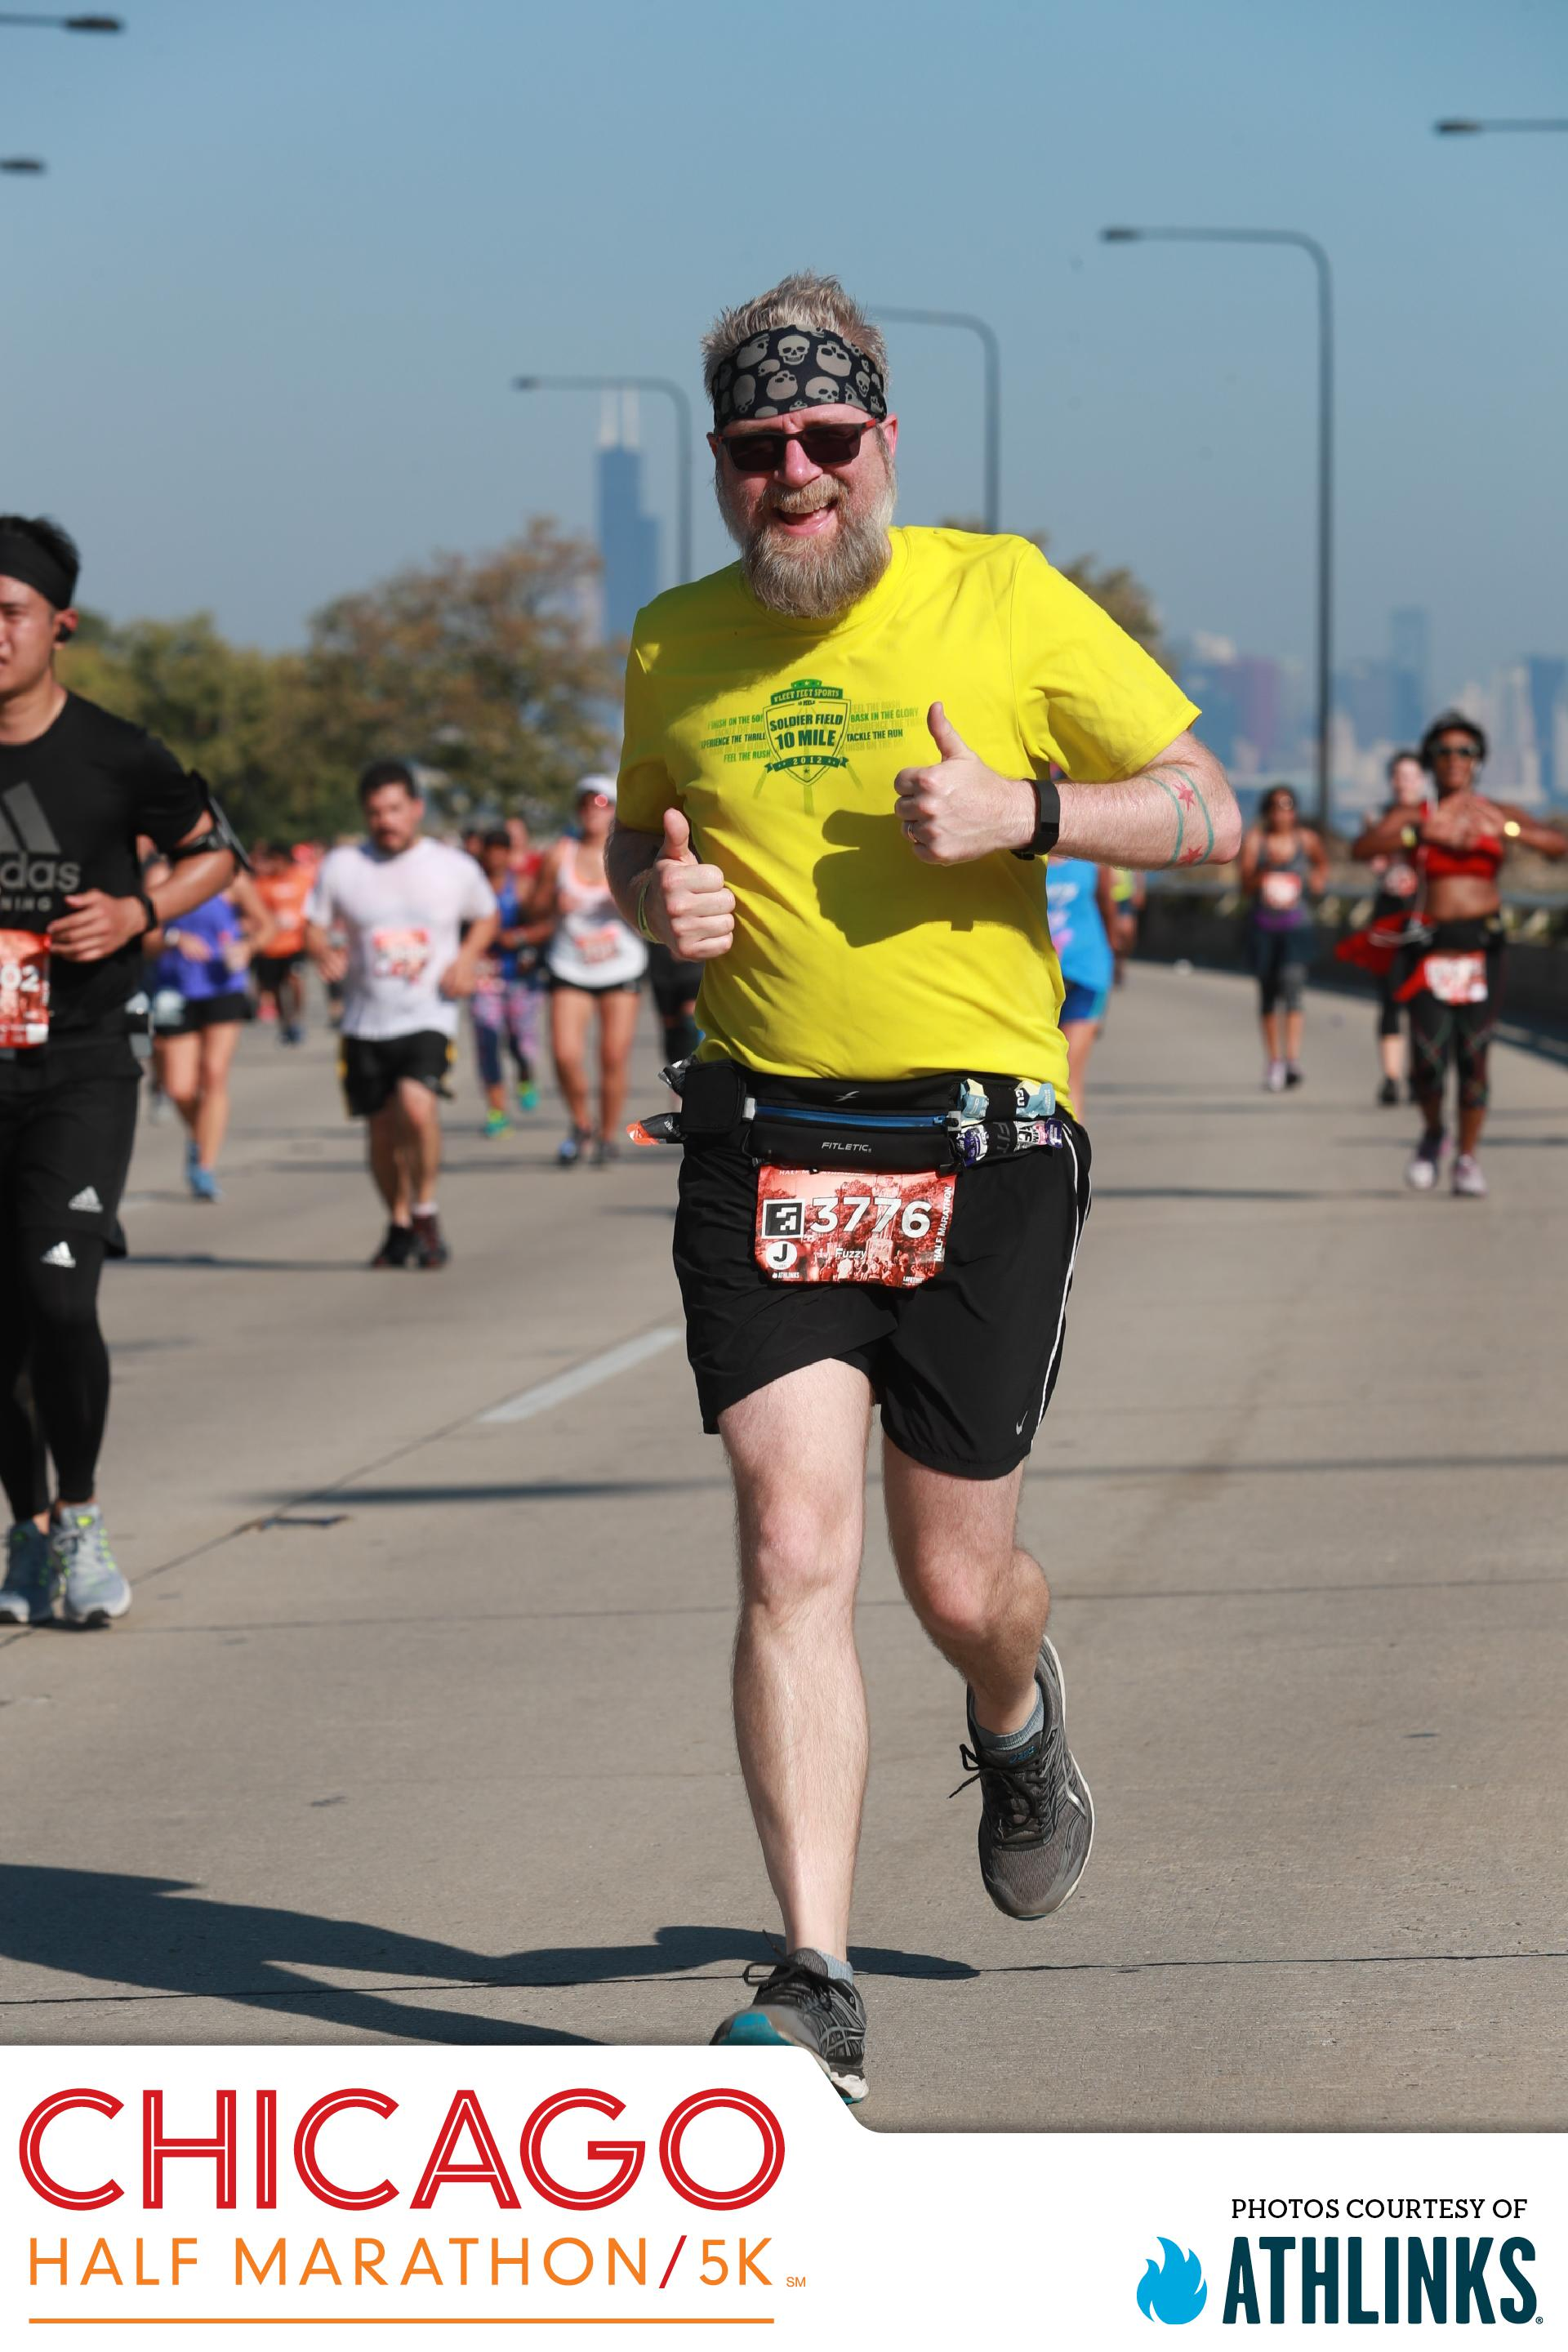 Fuzzy running the Chicago Half-Marathon